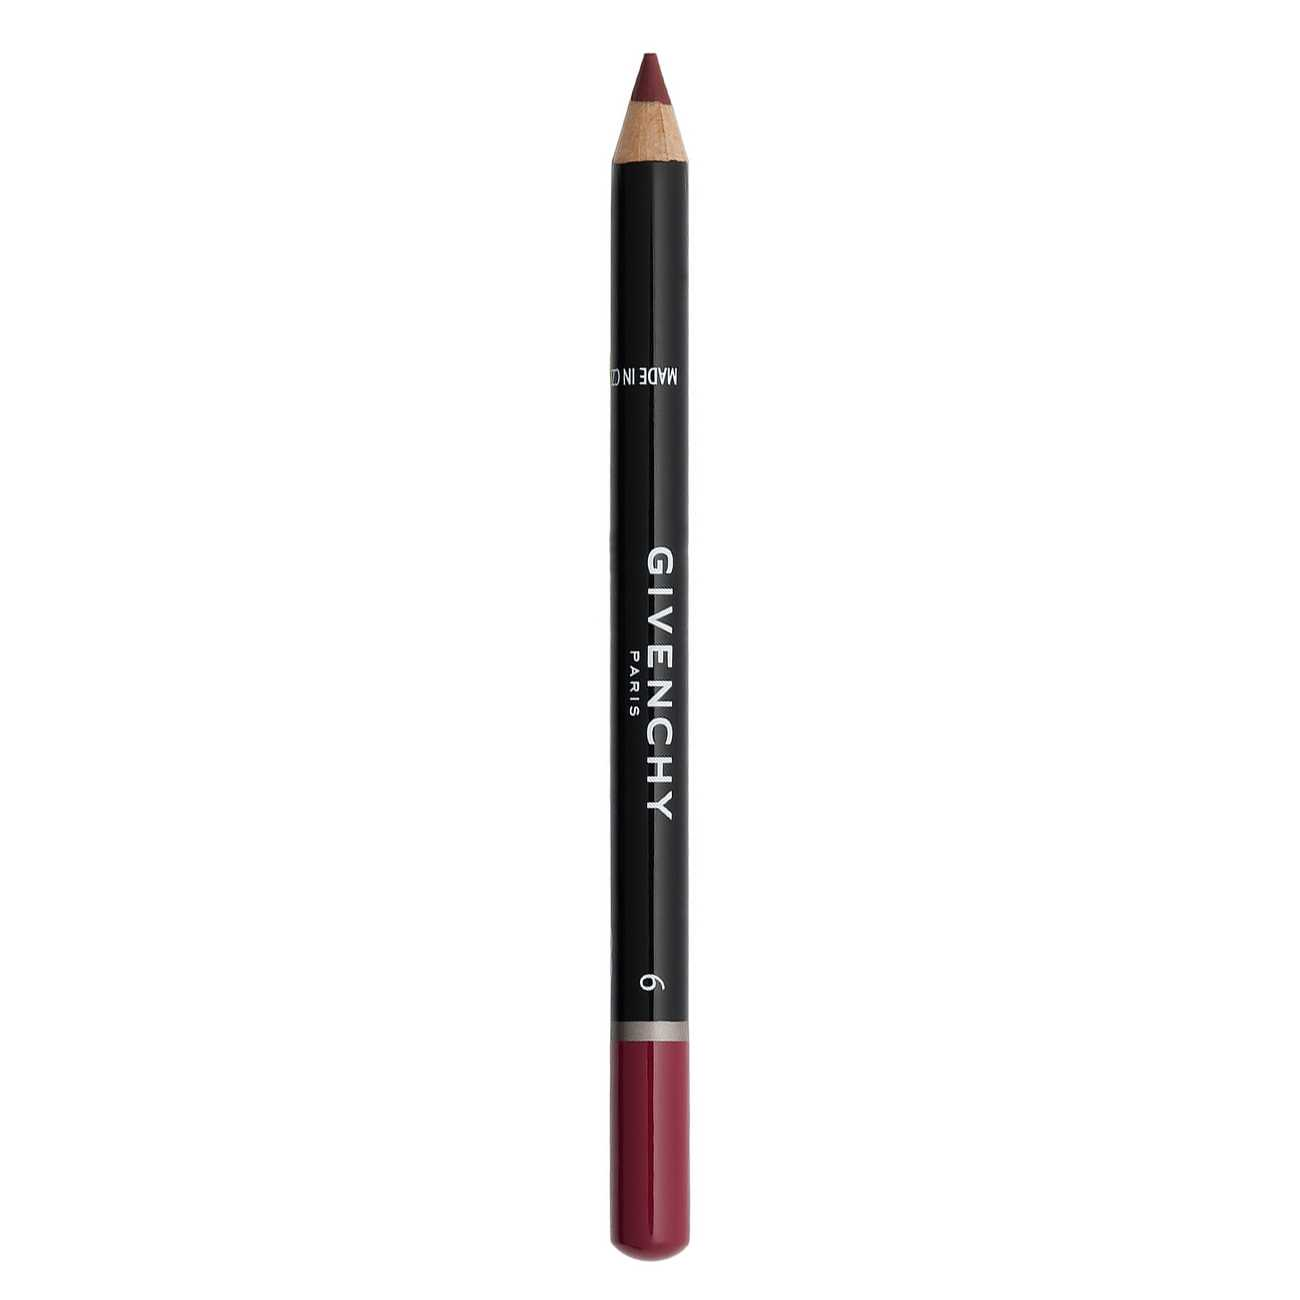 Lip Liner 2 G Raspberry 6 Givenchy imagine 2021 bestvalue.eu